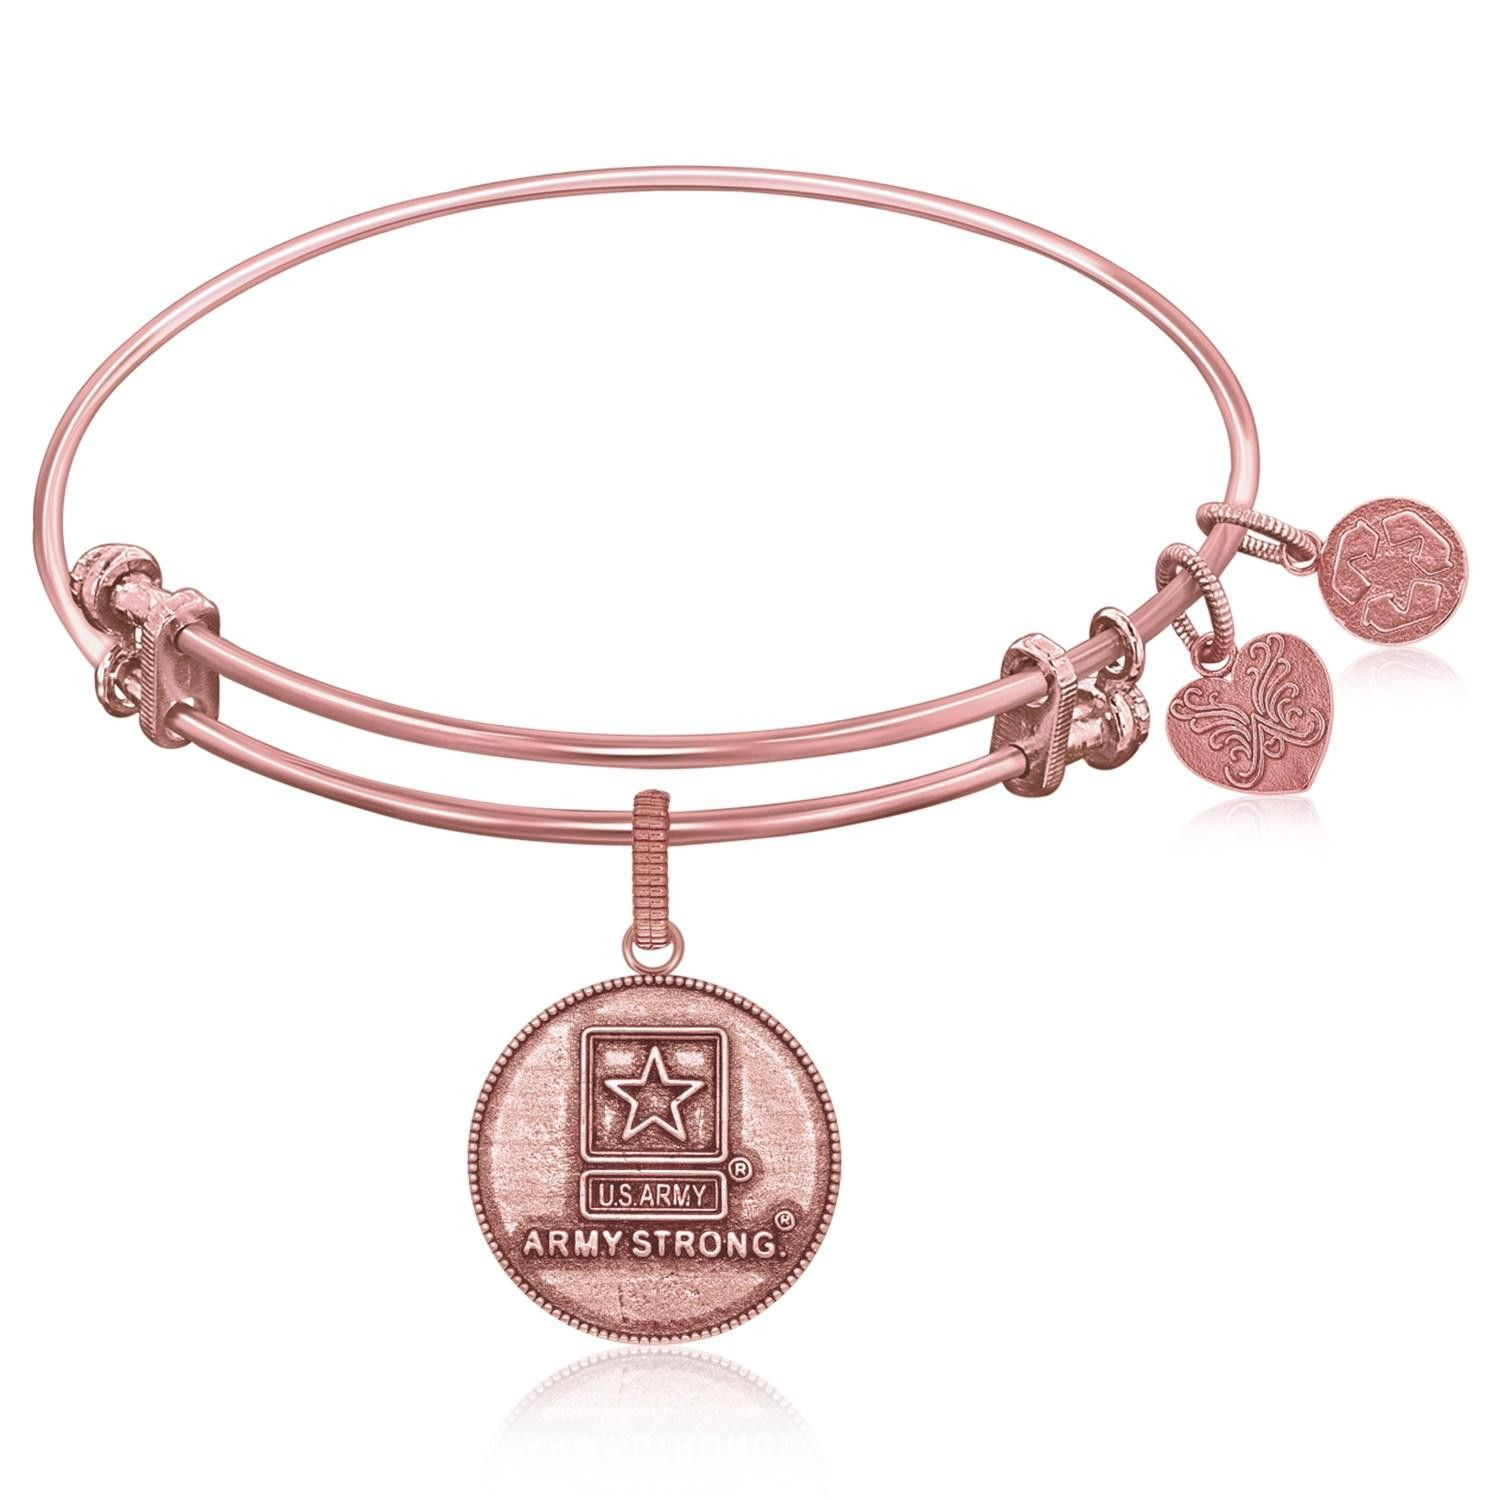 Expandable Bangle in Pink Tone Brass with U.S. Army Strong Symbol